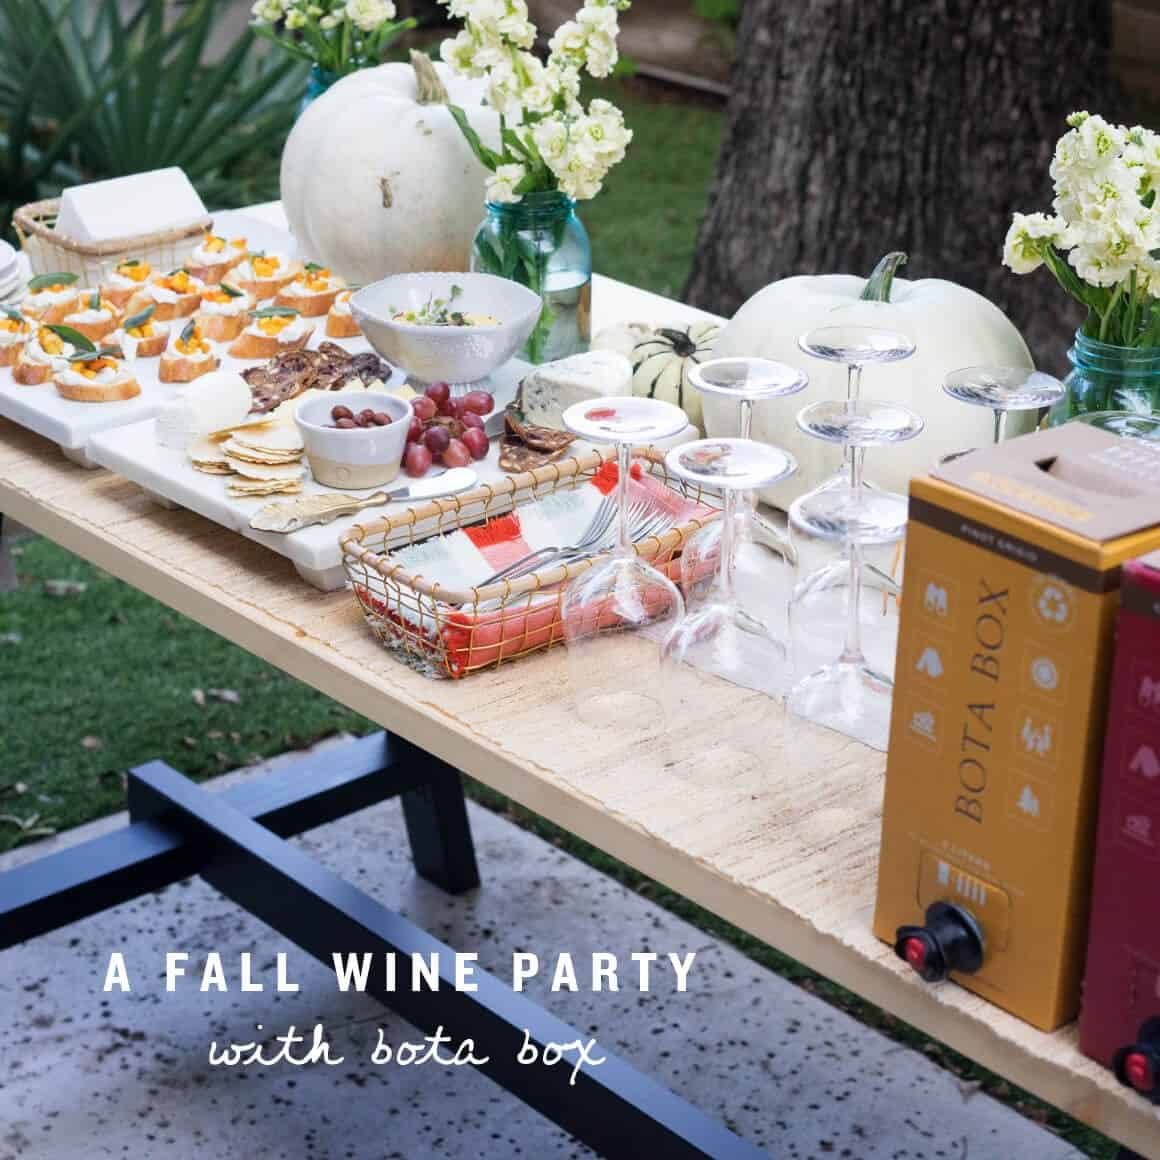 A Fall Wine Party